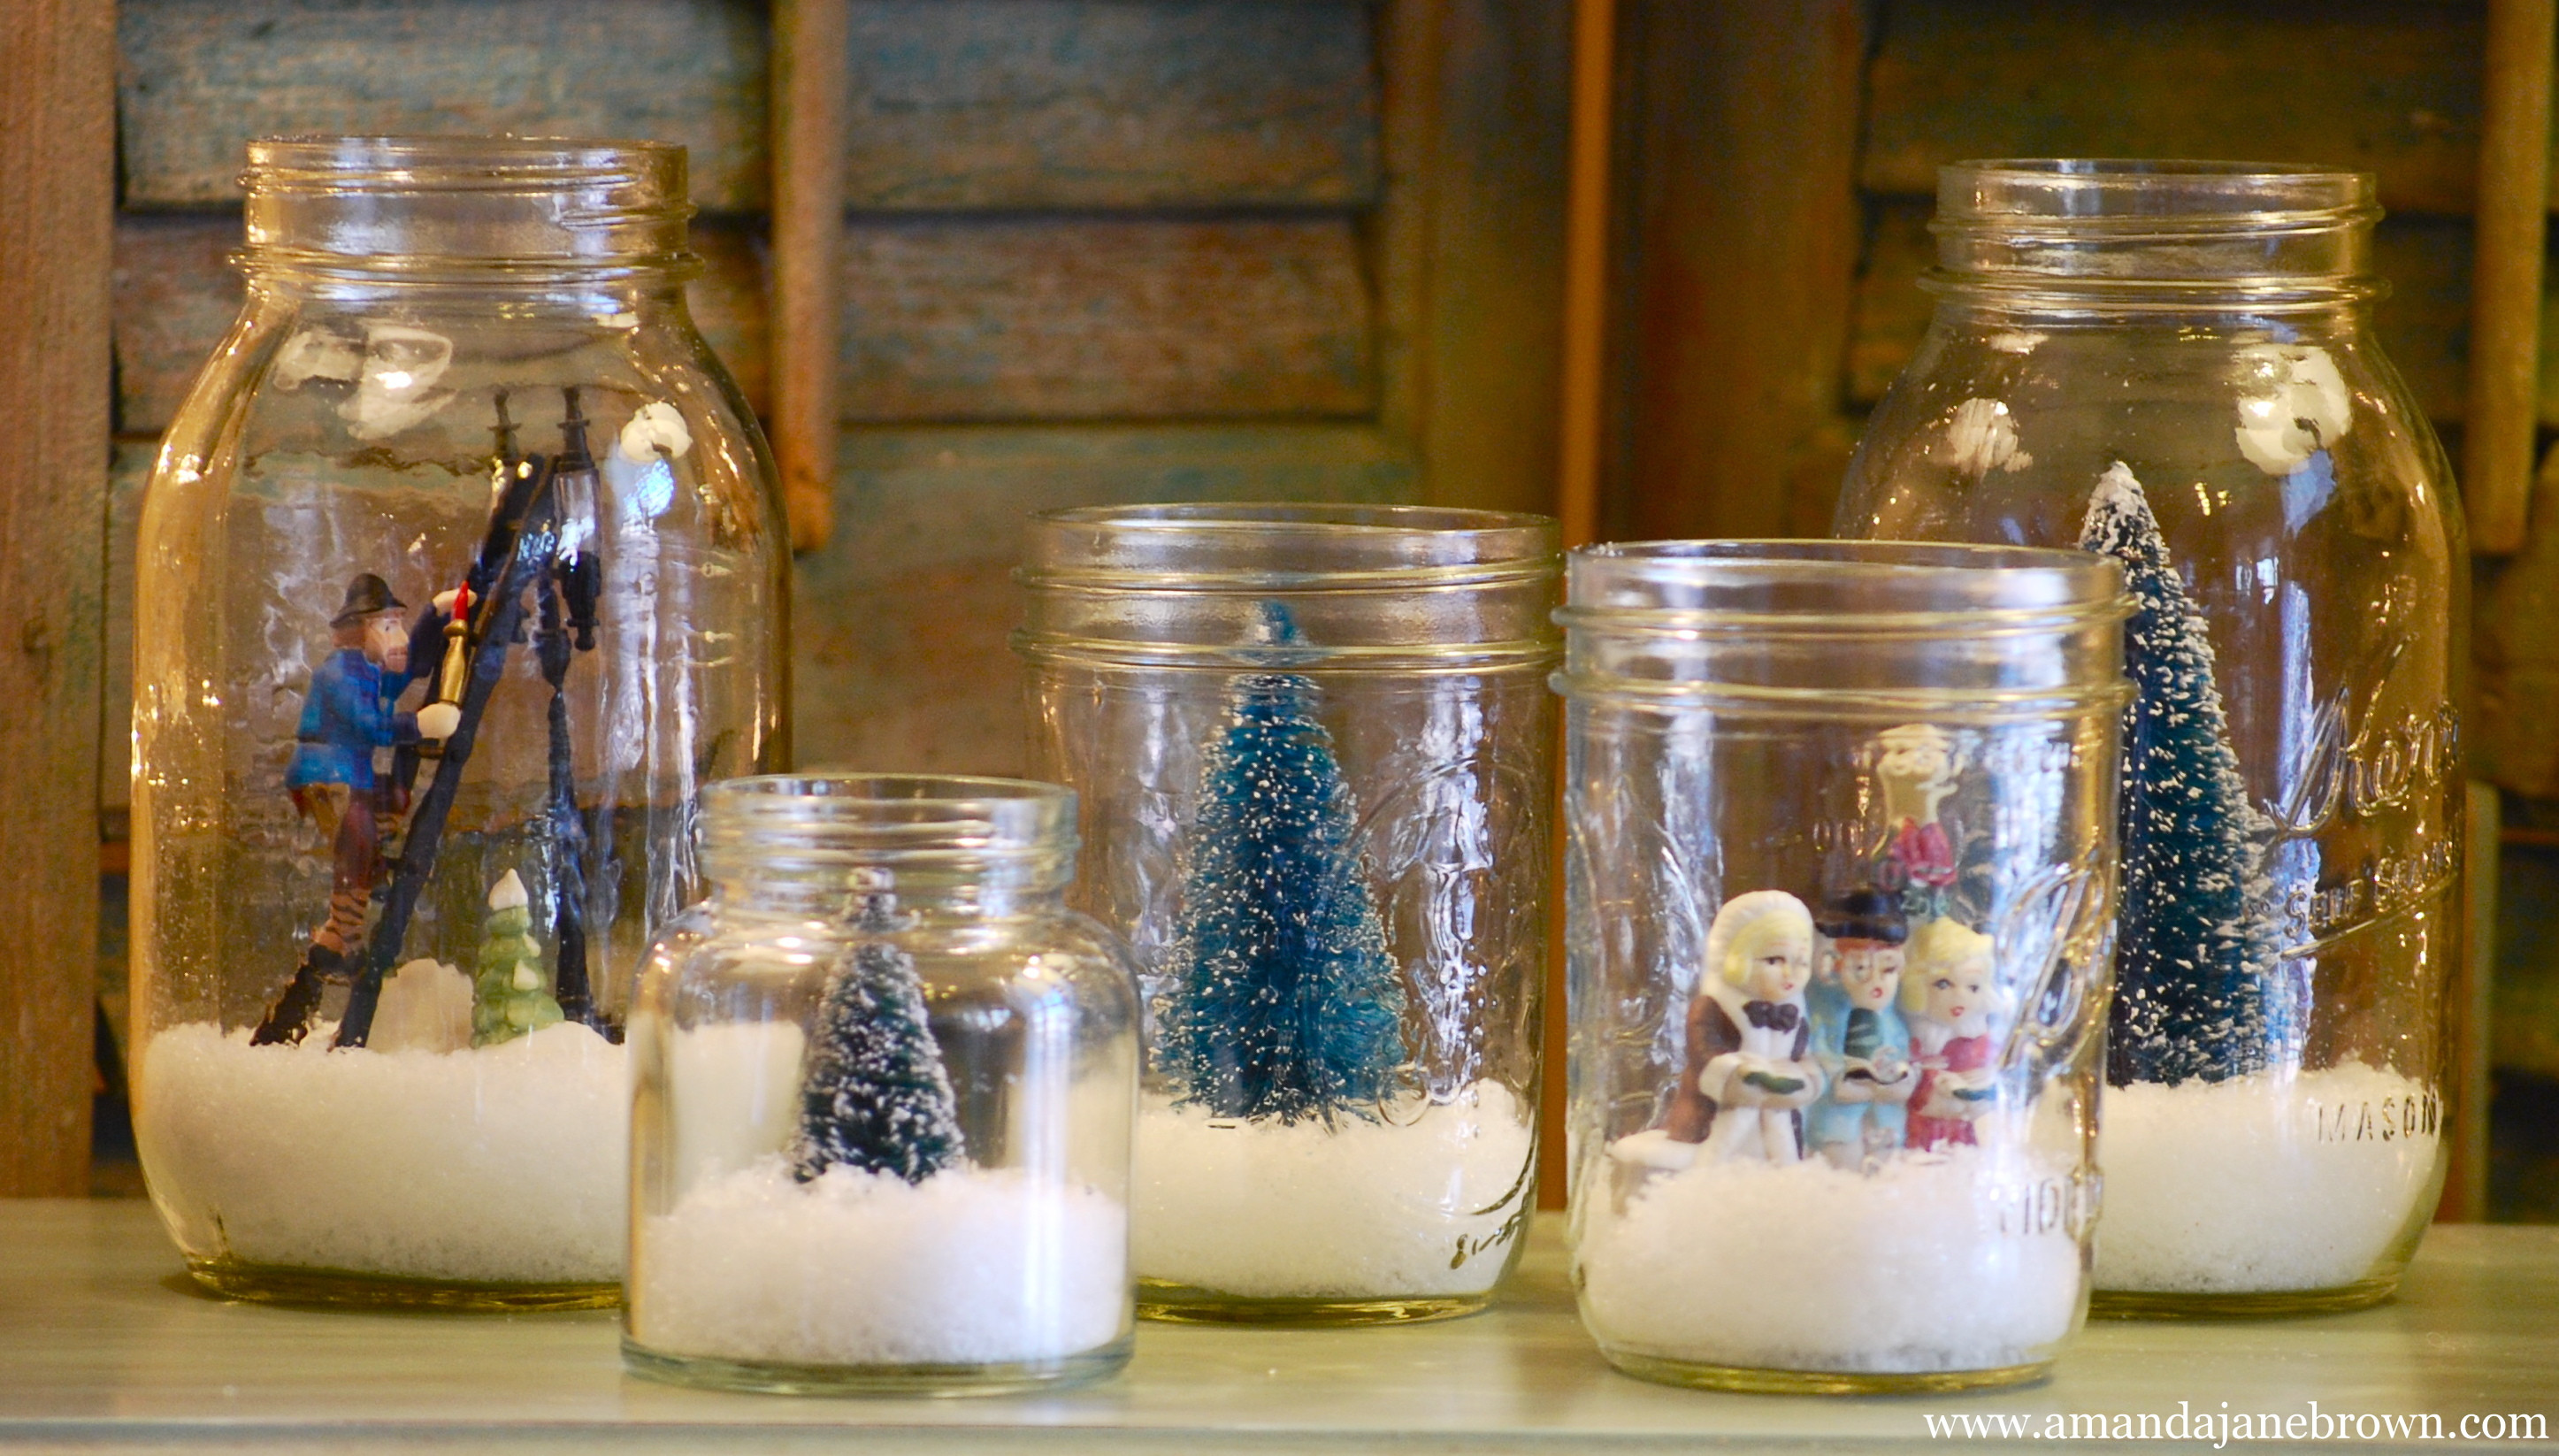 Best ideas about DIY Christmas Snow Globe . Save or Pin DIY Snow Globes Amanda Jane Brown Now.